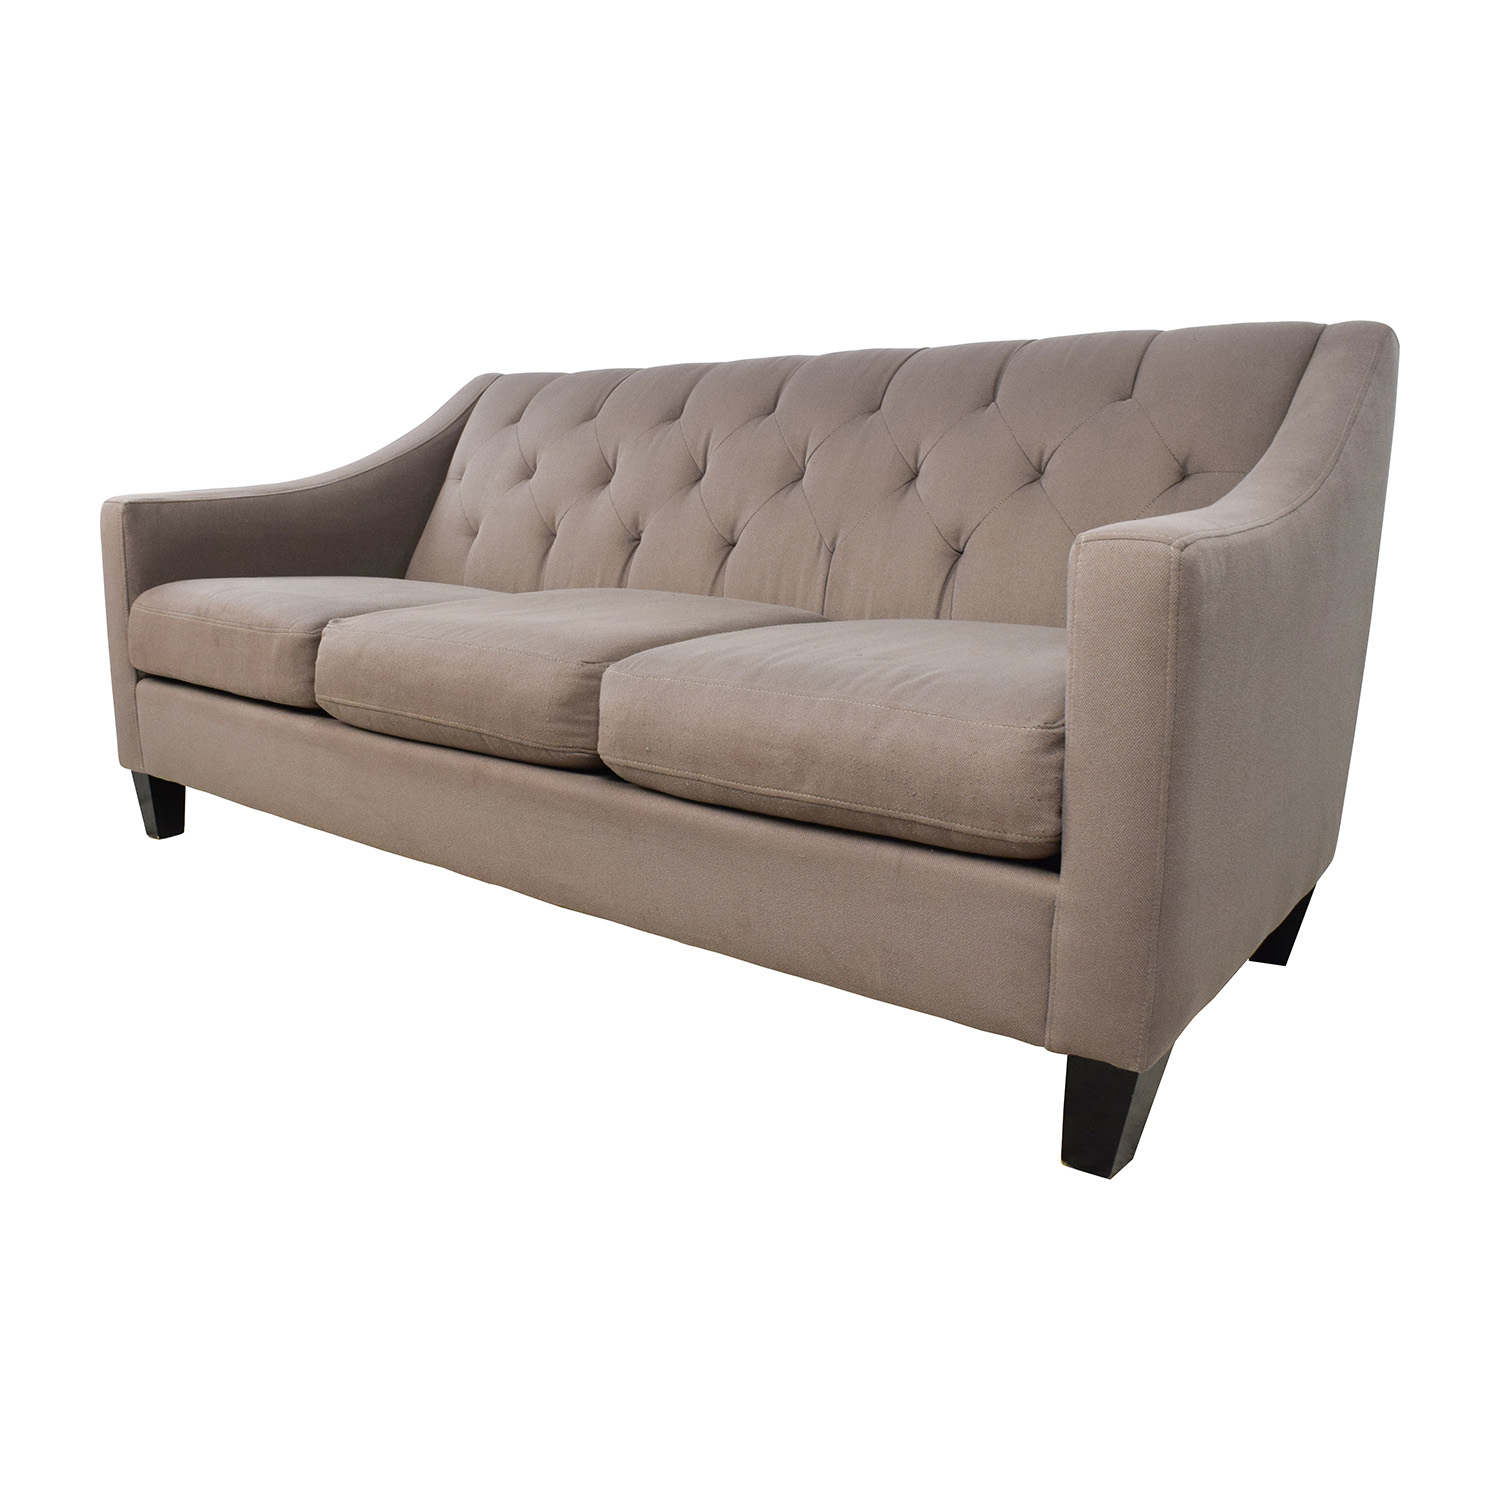 Sectional Sofas Macys Sofa Deep Couches And Sofas Macys